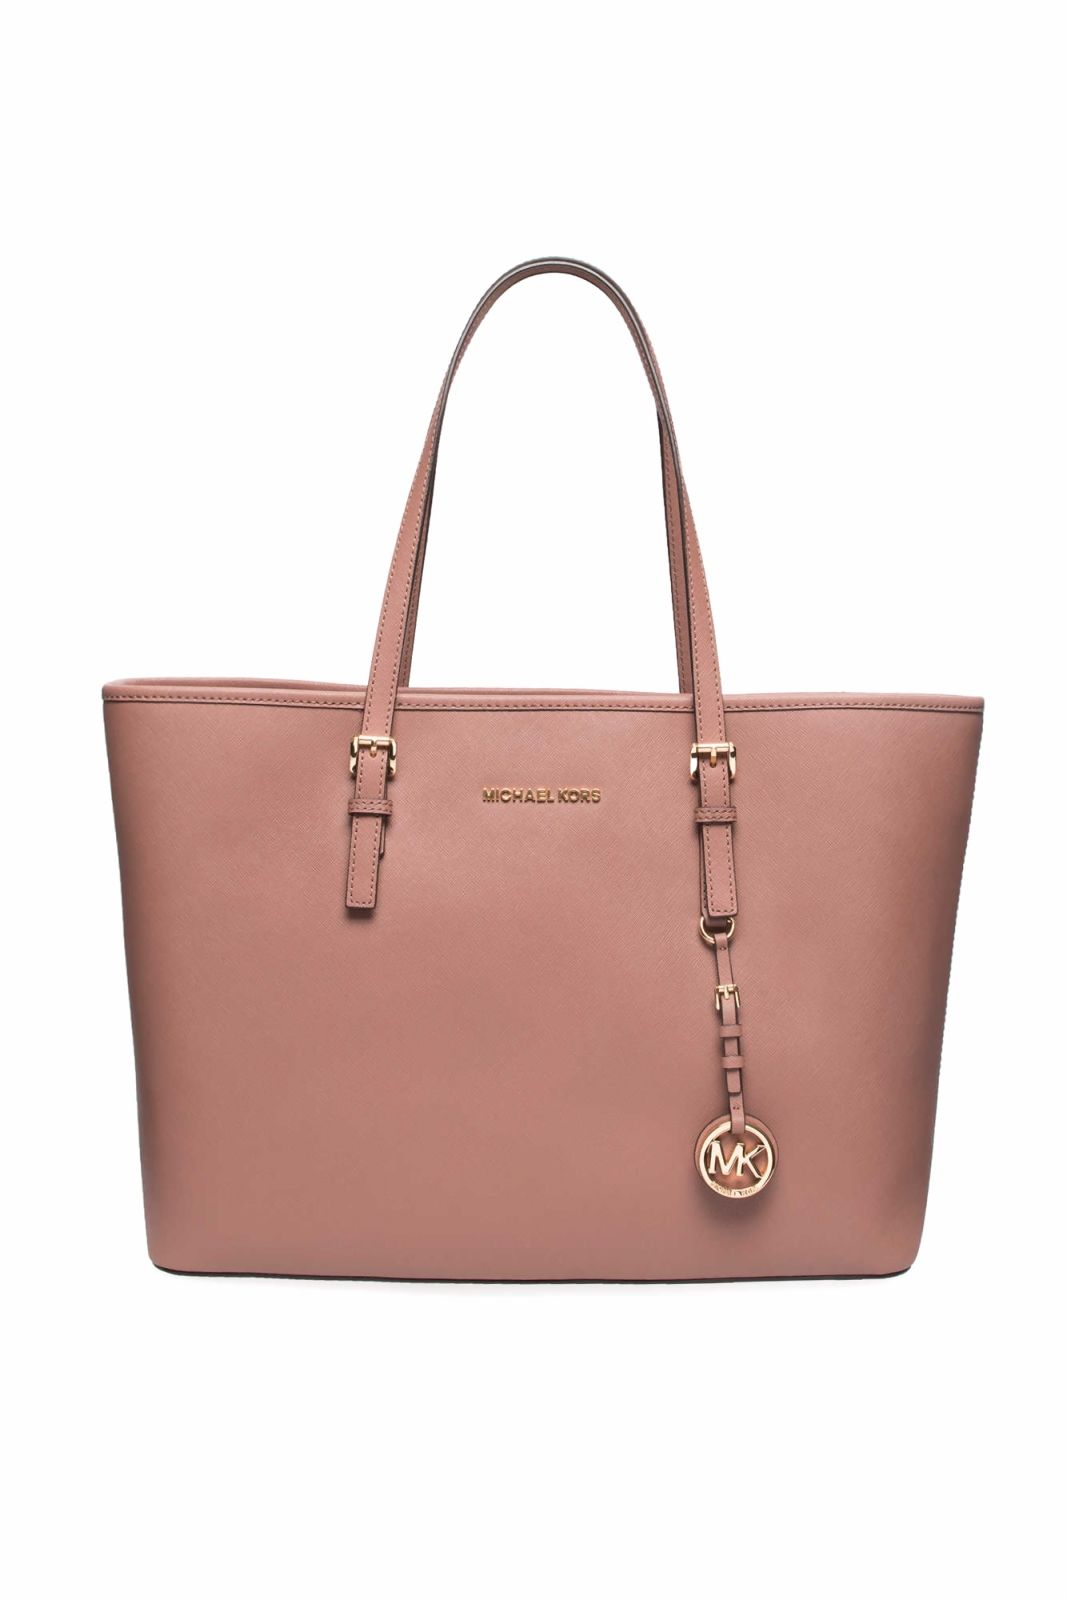 776a4041b3bea  Michaelkors  Handbags  Purse  Outlet  Backpack  Outfit Väska Jet Set  Travel MD Mult Funt Tote DUSTY ROSE GOLD - Michael - Michael Kors -  Designers - ...